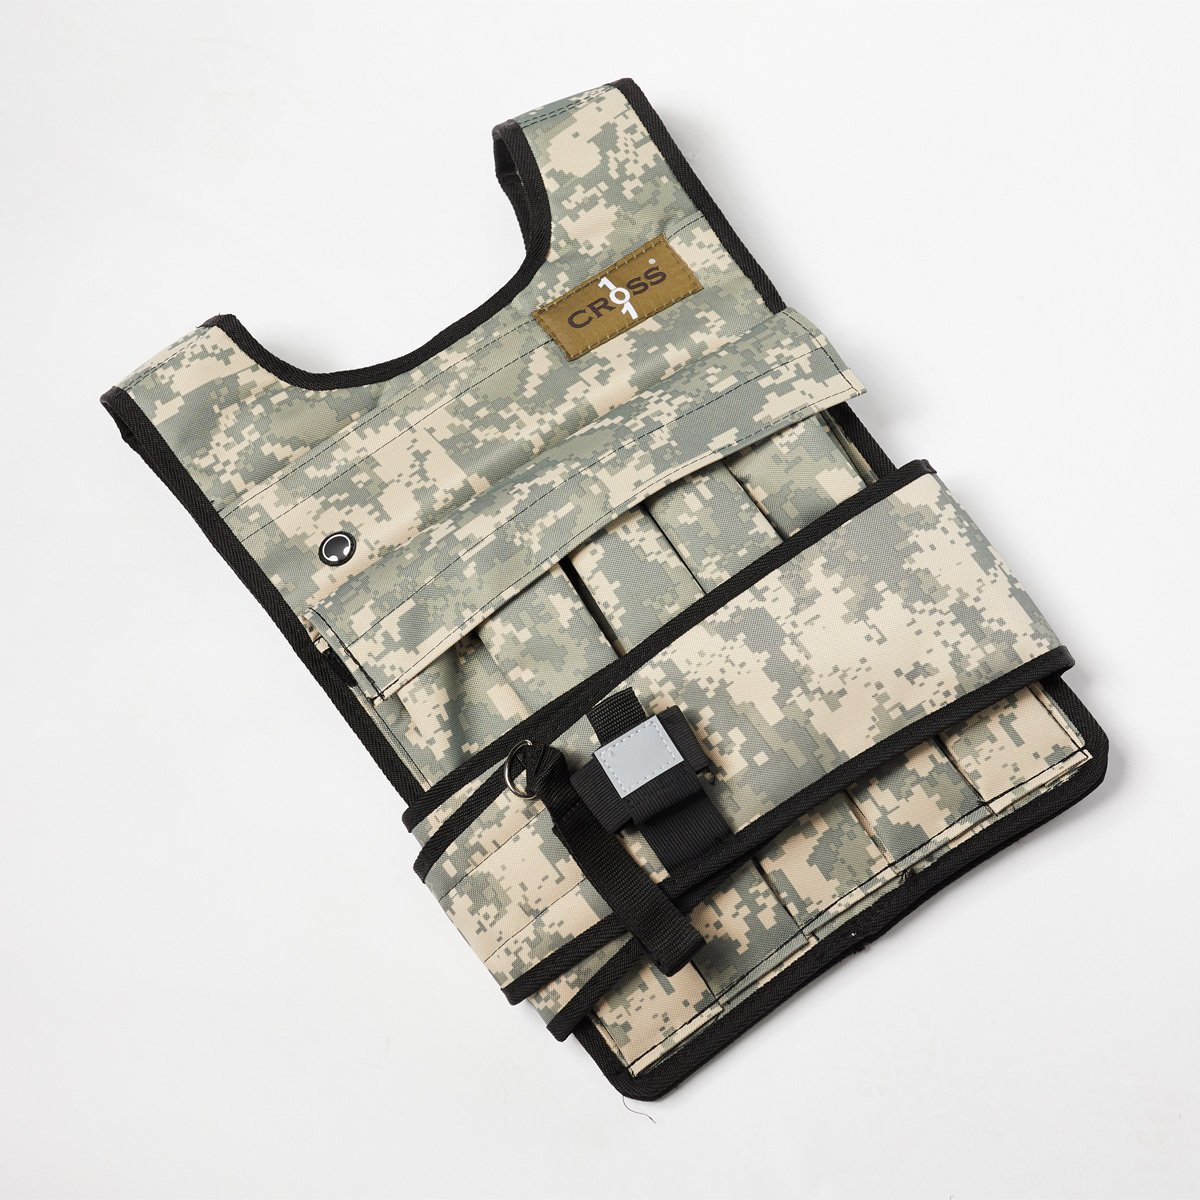 CROSS101 Camouflage Adjustable Weighted Vest with Shoulder Pads (50) by CROSS101